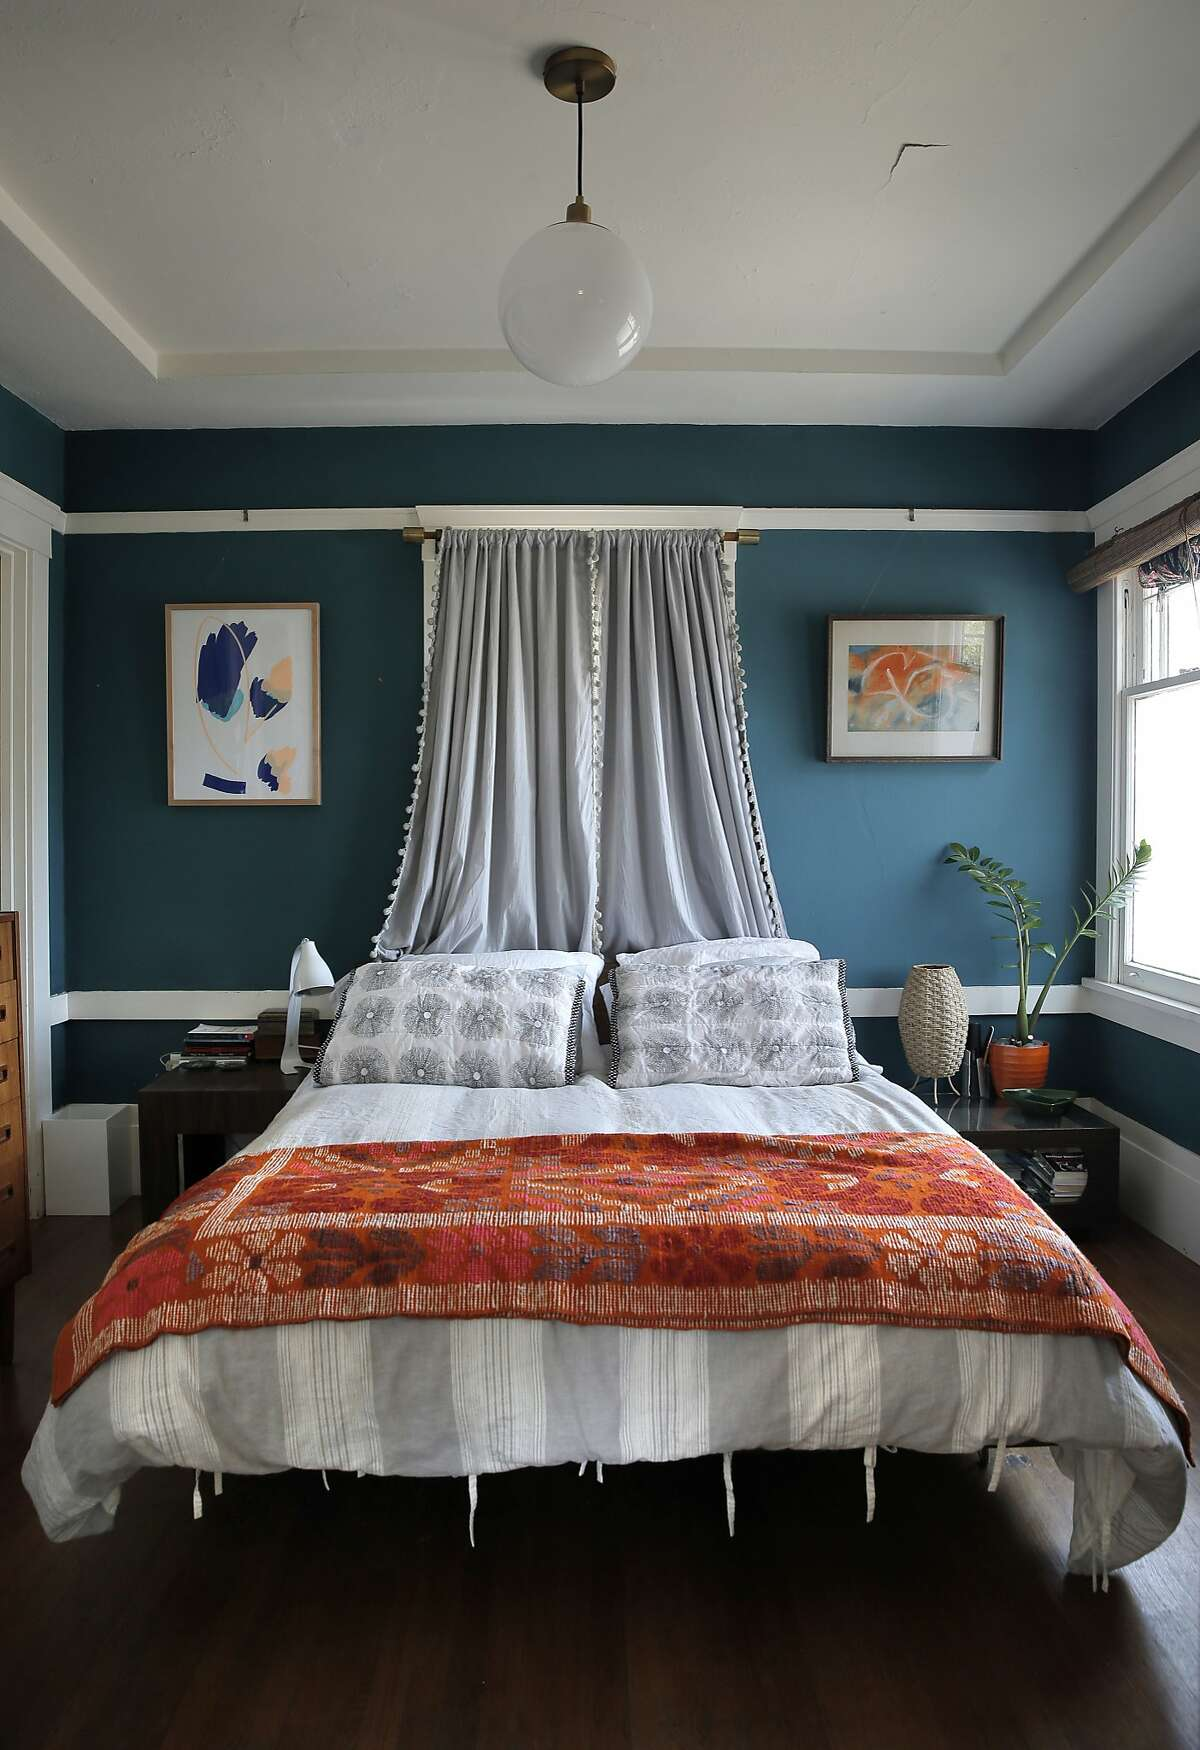 The bed in the master bedroom in Dona Savitsky's home which she recently remodeled in Oakland , Calif., on Monday, July 20, 2015.